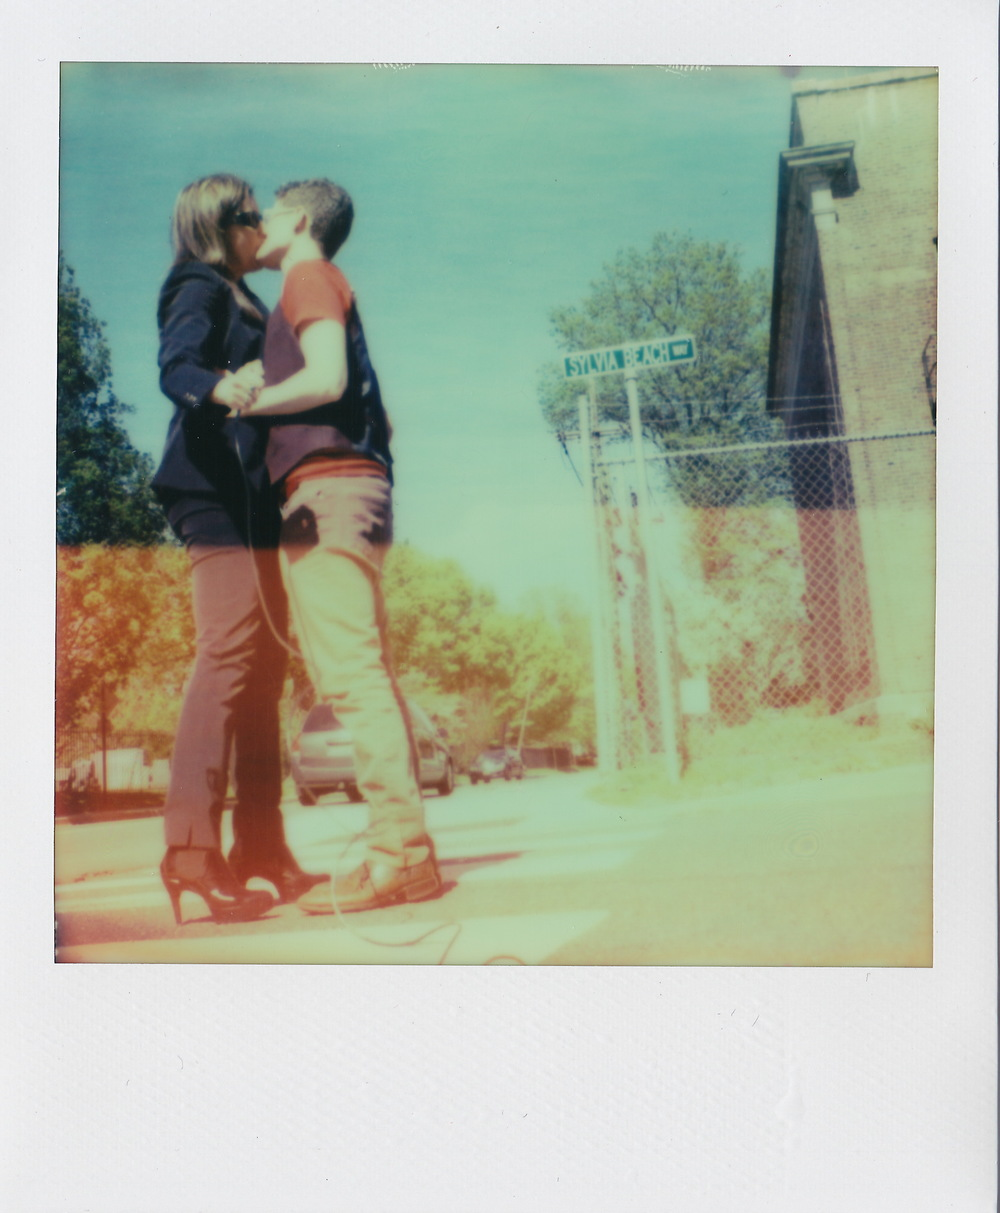 Sylvia Beach Way, Princeton New Jersey, from Kissing on Main Street, 2015, original SX-70 Polaroid.